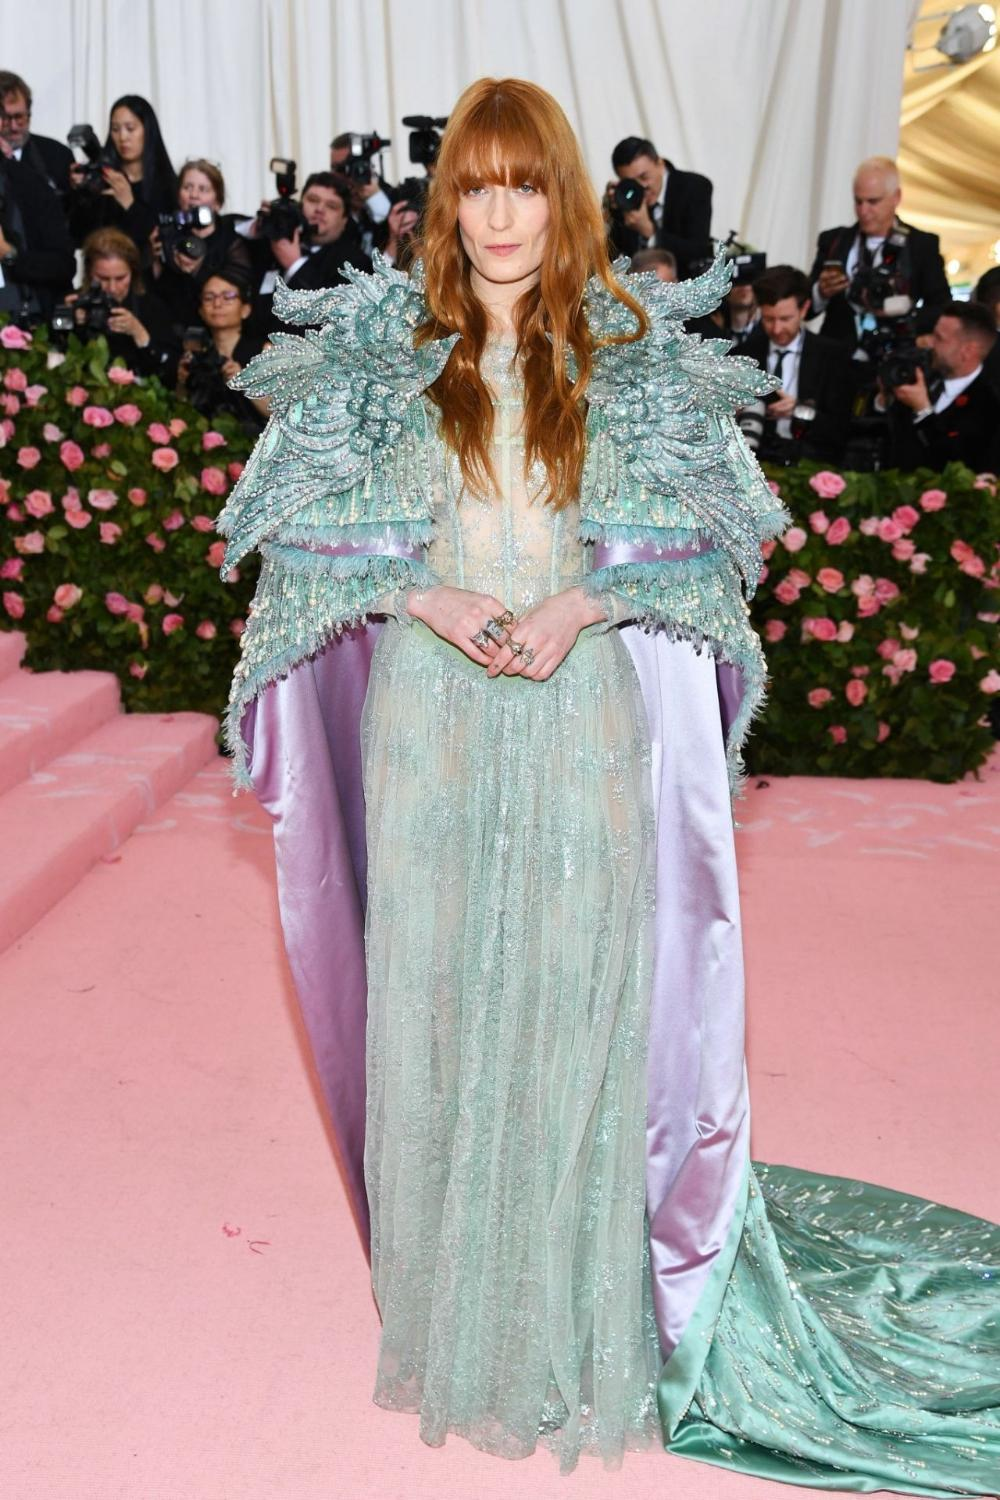 Florence Welch at the MET Gala 2019